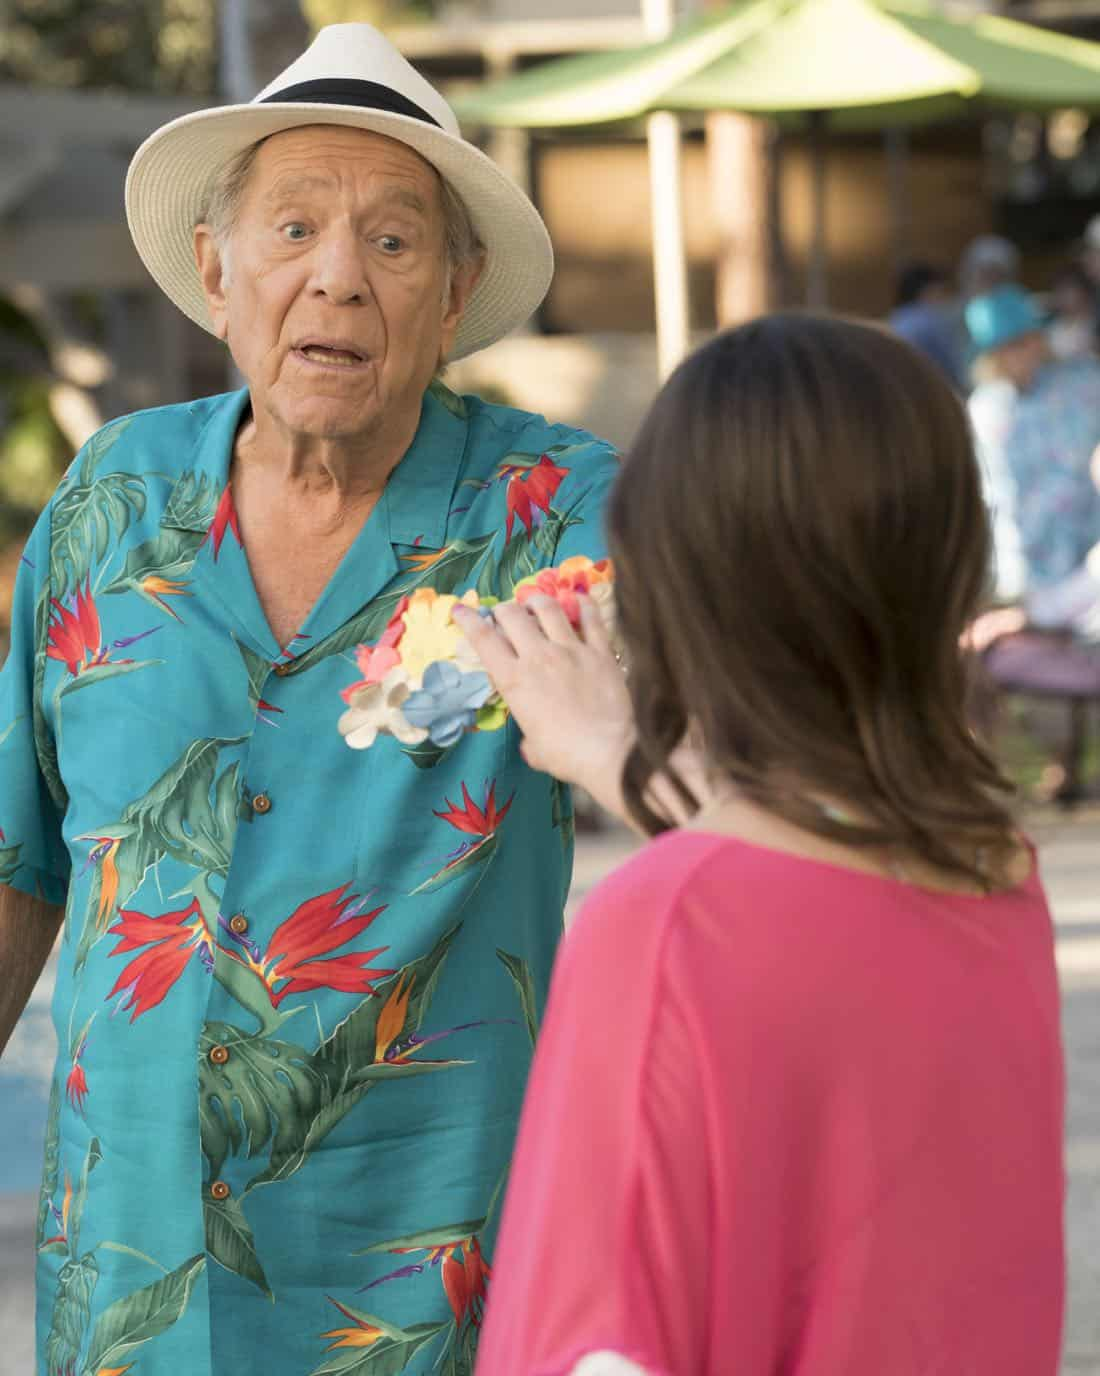 """THE GOLDBERGS - """"MTV Spring Break"""" - Hoping to get the true spring break experience, Erica and Barry visit Pops in Florida, yet it's nothing how they expected. Meanwhile, Adam tells the truth to Beverly and Murray but then gets a surprising reaction, on """"The Goldbergs,"""" WEDNESDAY, APRIL 4 (8:00-8:30 p.m. EDT), on The ABC Television Network. (ABC/Ron Tom) GEORGE SEGAL"""